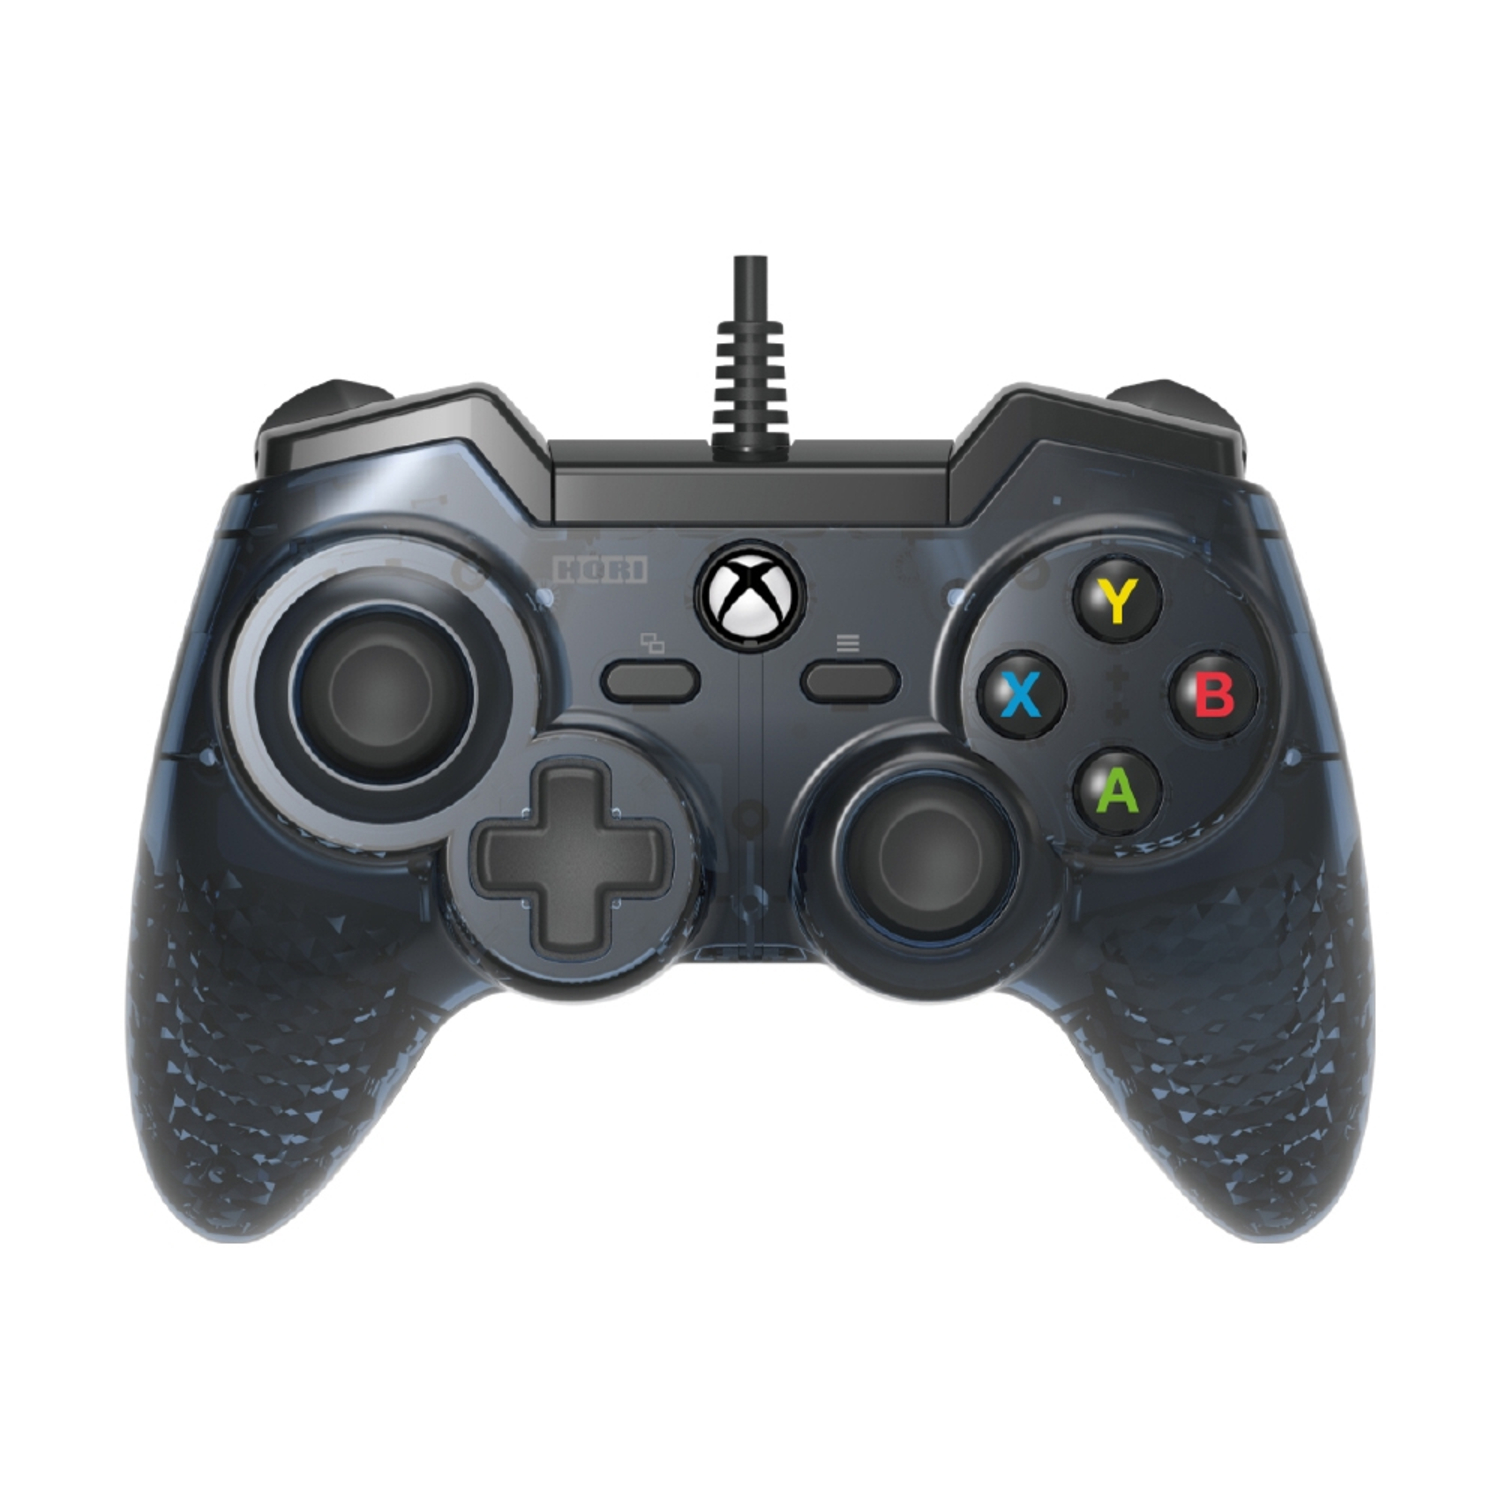 Xbox One - Controller - Wired - Hori Pad One Pro - Onyx (Hori)